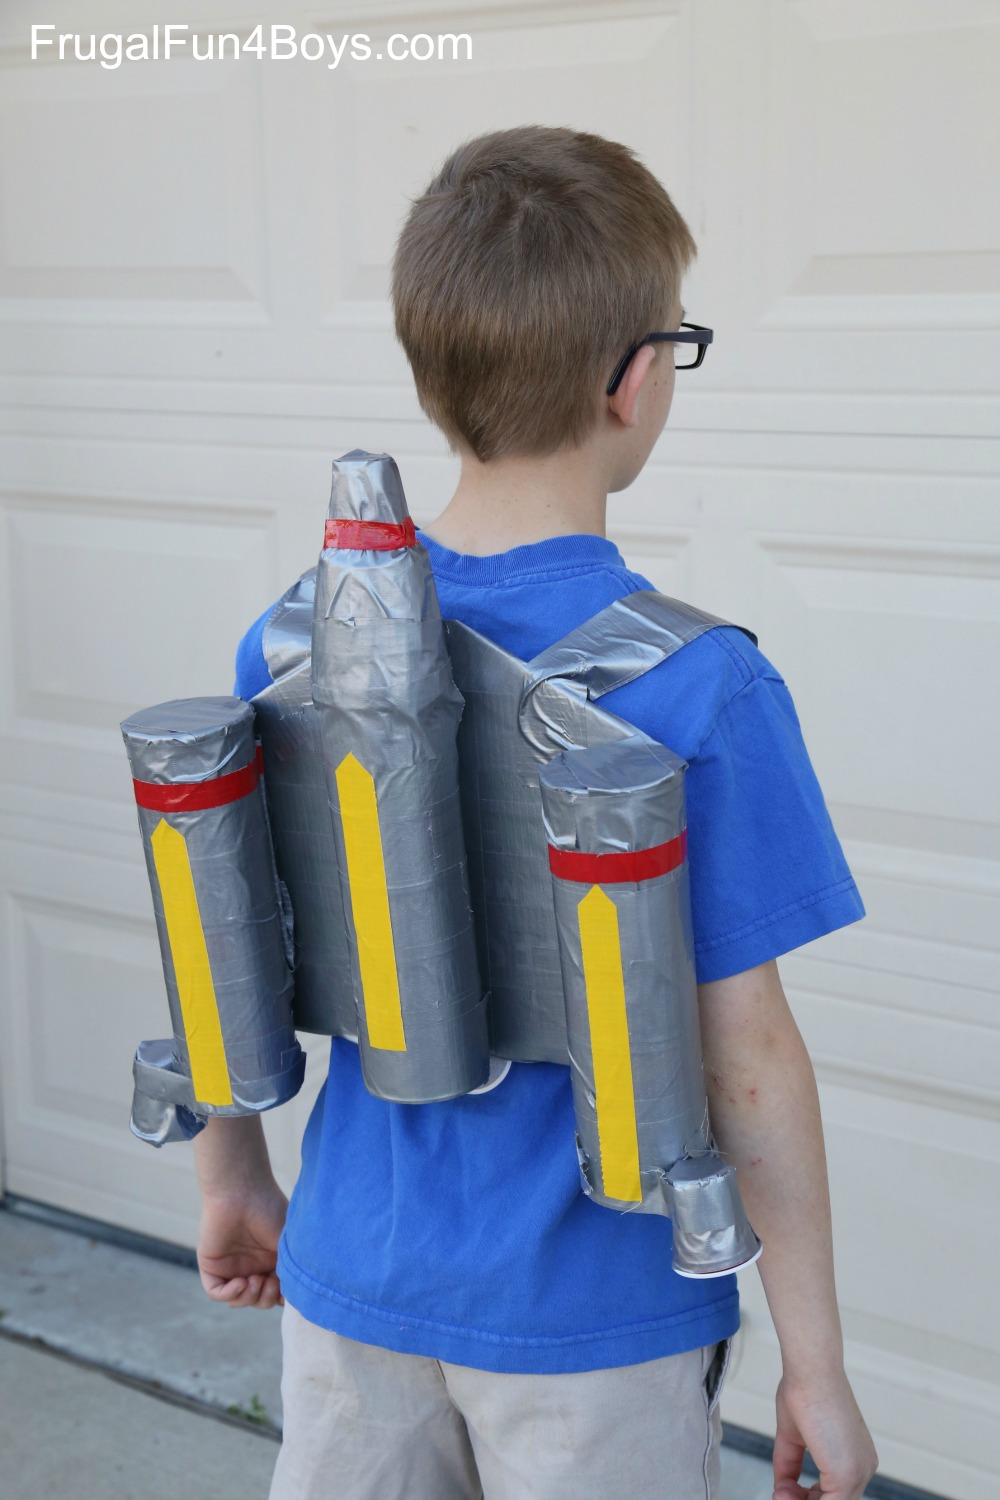 Duct Tape Star Wars Jetpack